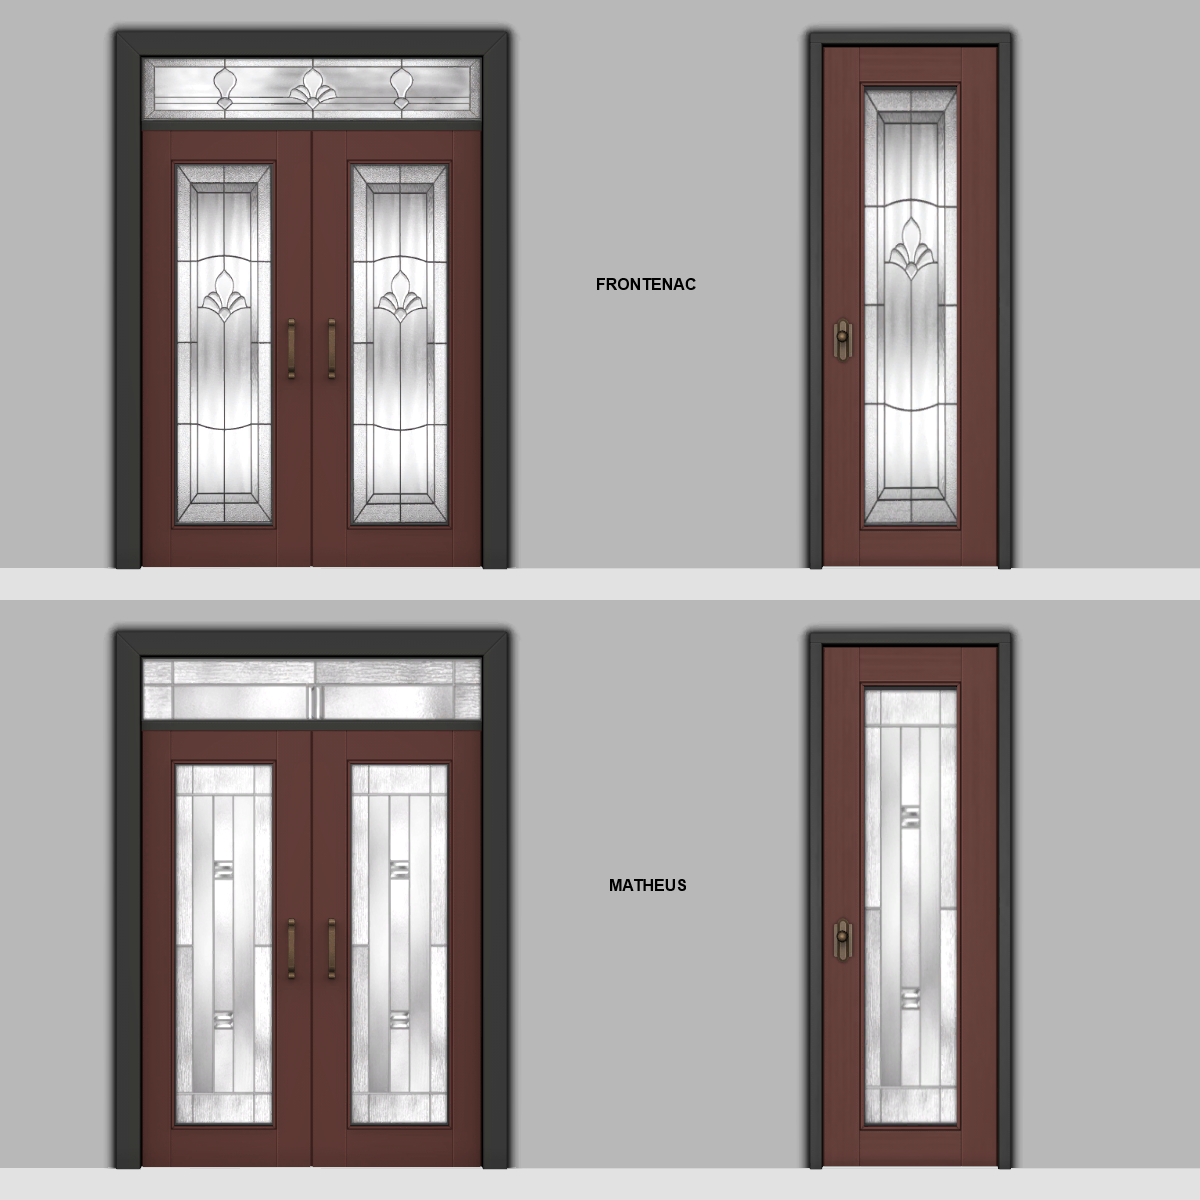 Supernatural Antique Doors Part 2 by Sims In Spring